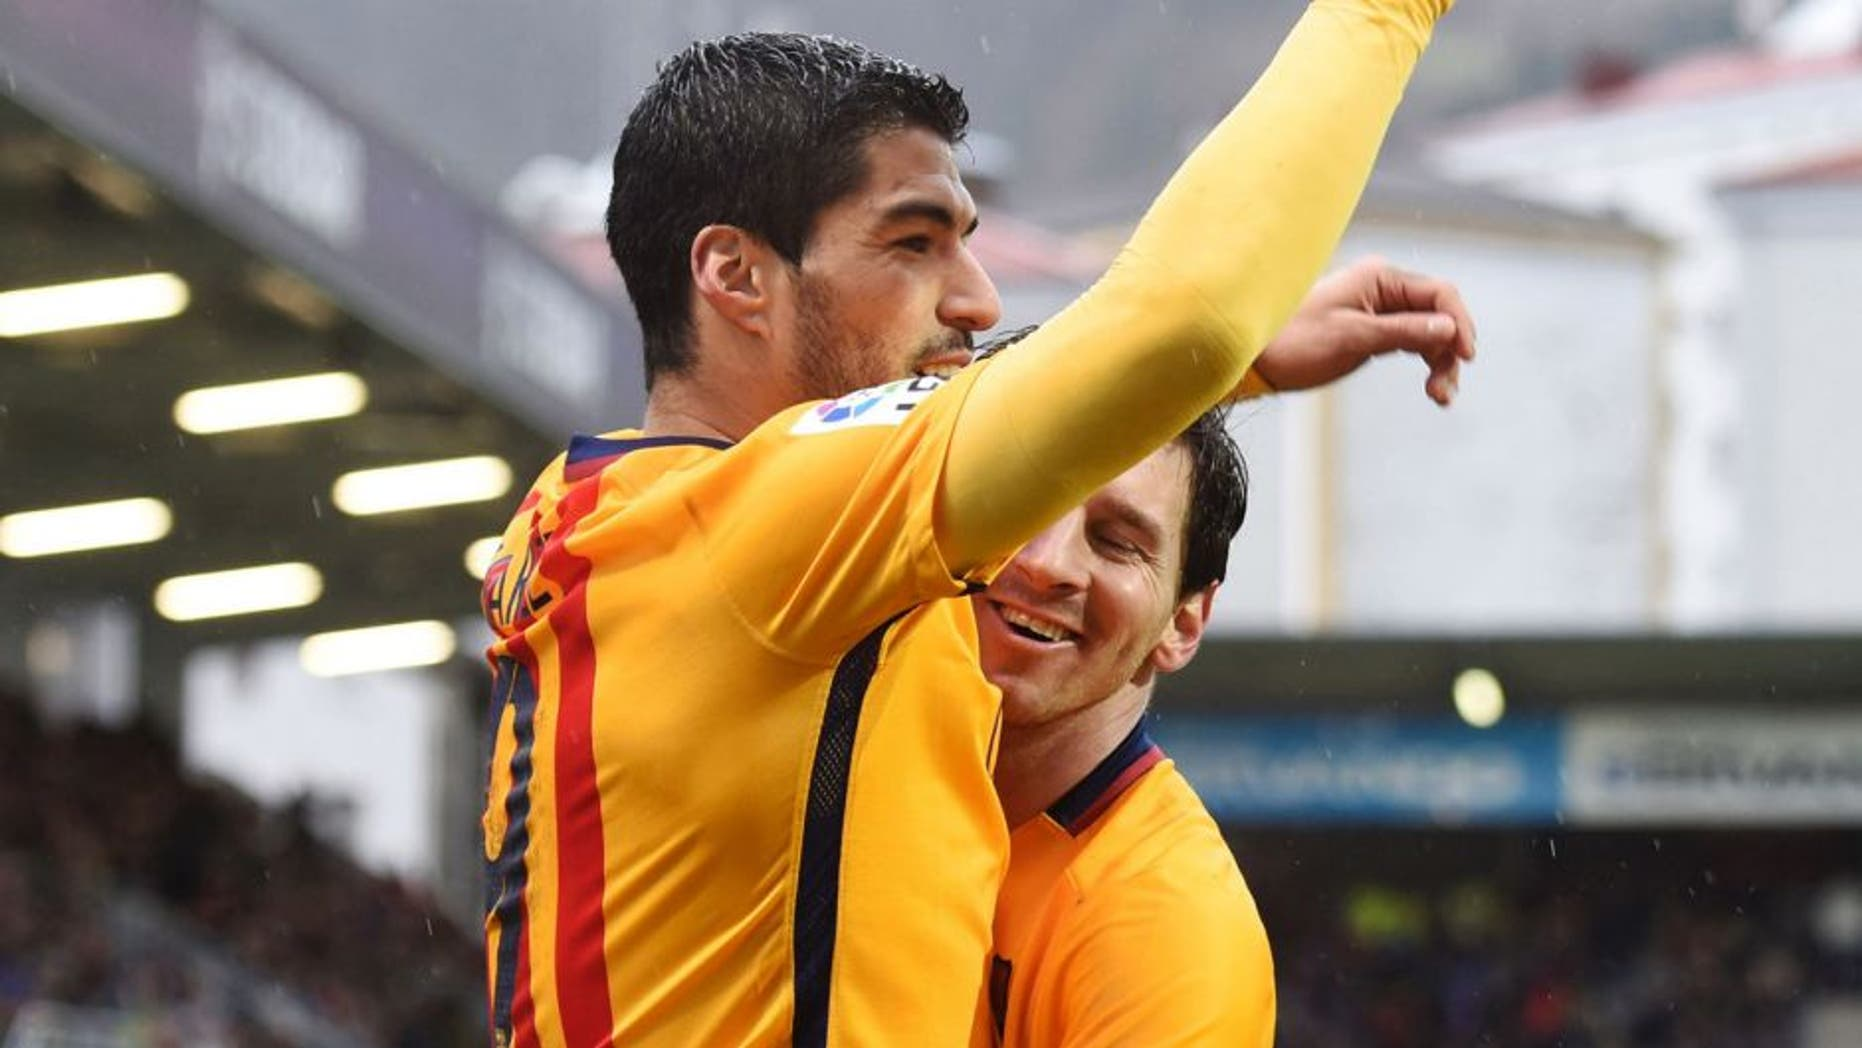 Barcelona's Uruguayan forward Luis Suarez (L) is congratulated by Argentinian forward Lionel Messi after scoring during the Spanish league football match SD Eibar vs FC Barcelona at the Ipurua stadium in Eibar on March 6, 2016. / AFP / ANDER GILLENEA (Photo credit should read ANDER GILLENEA/AFP/Getty Images)